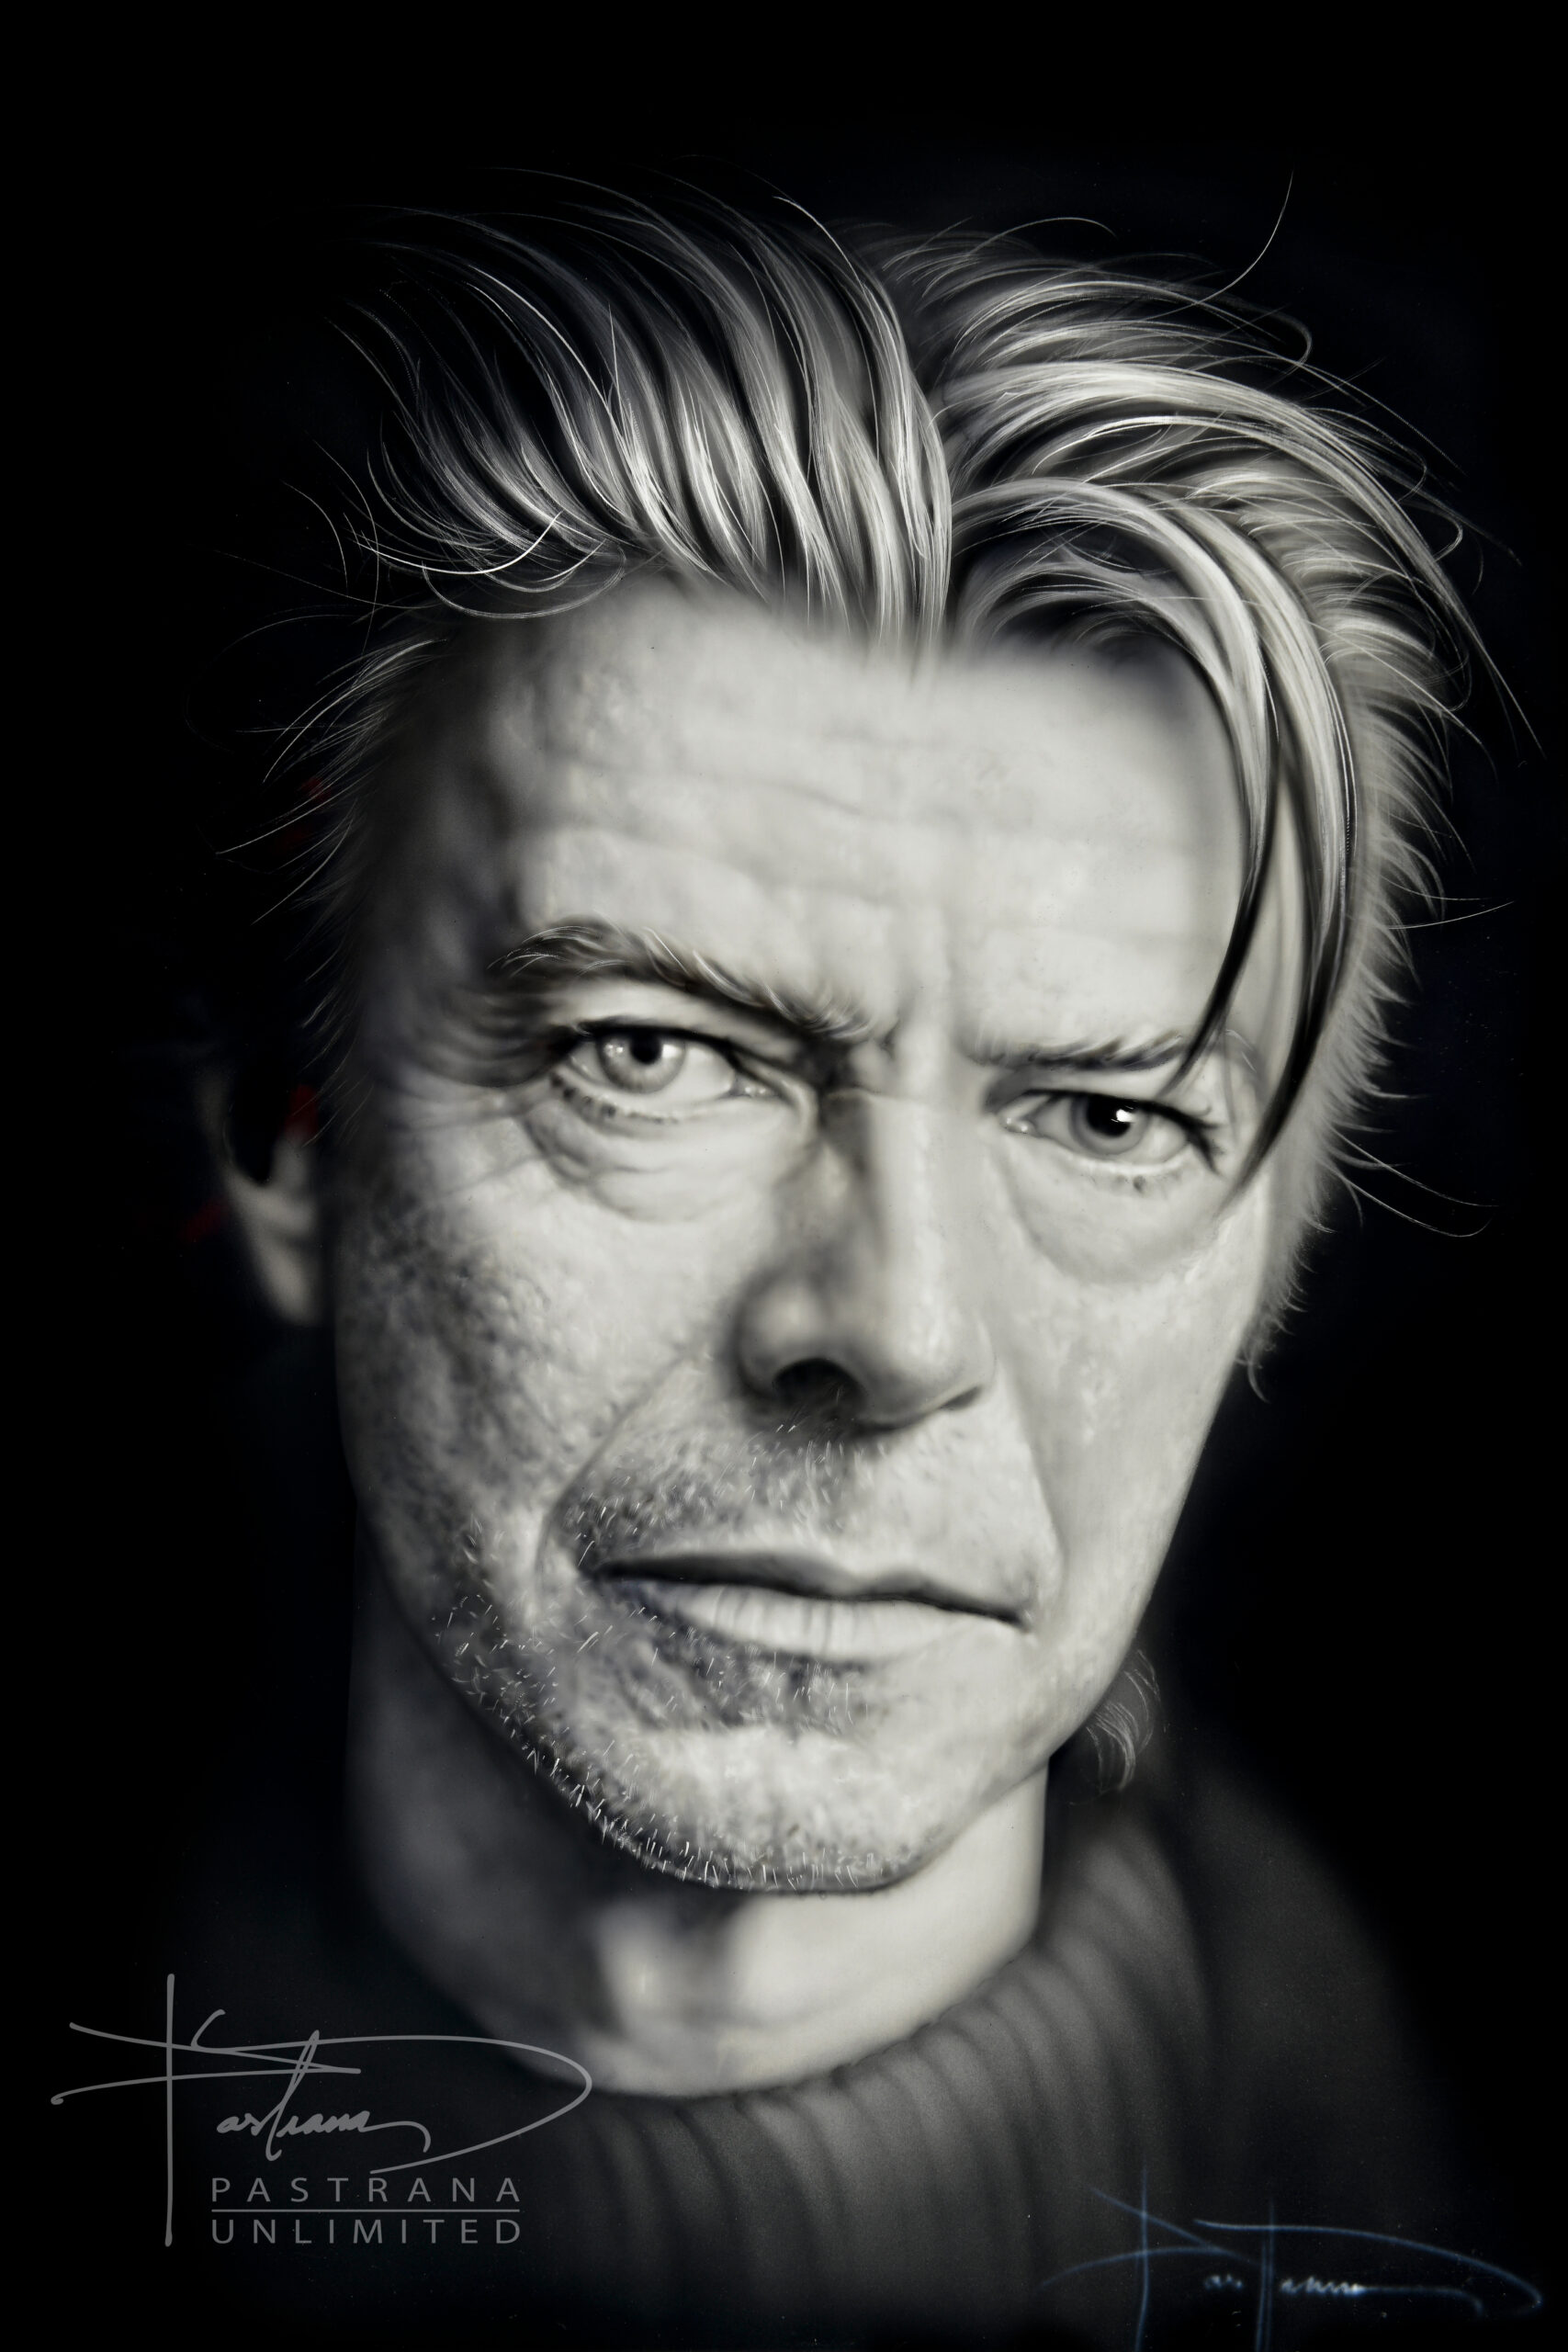 A.Pastrana.Unlimited.Bowie